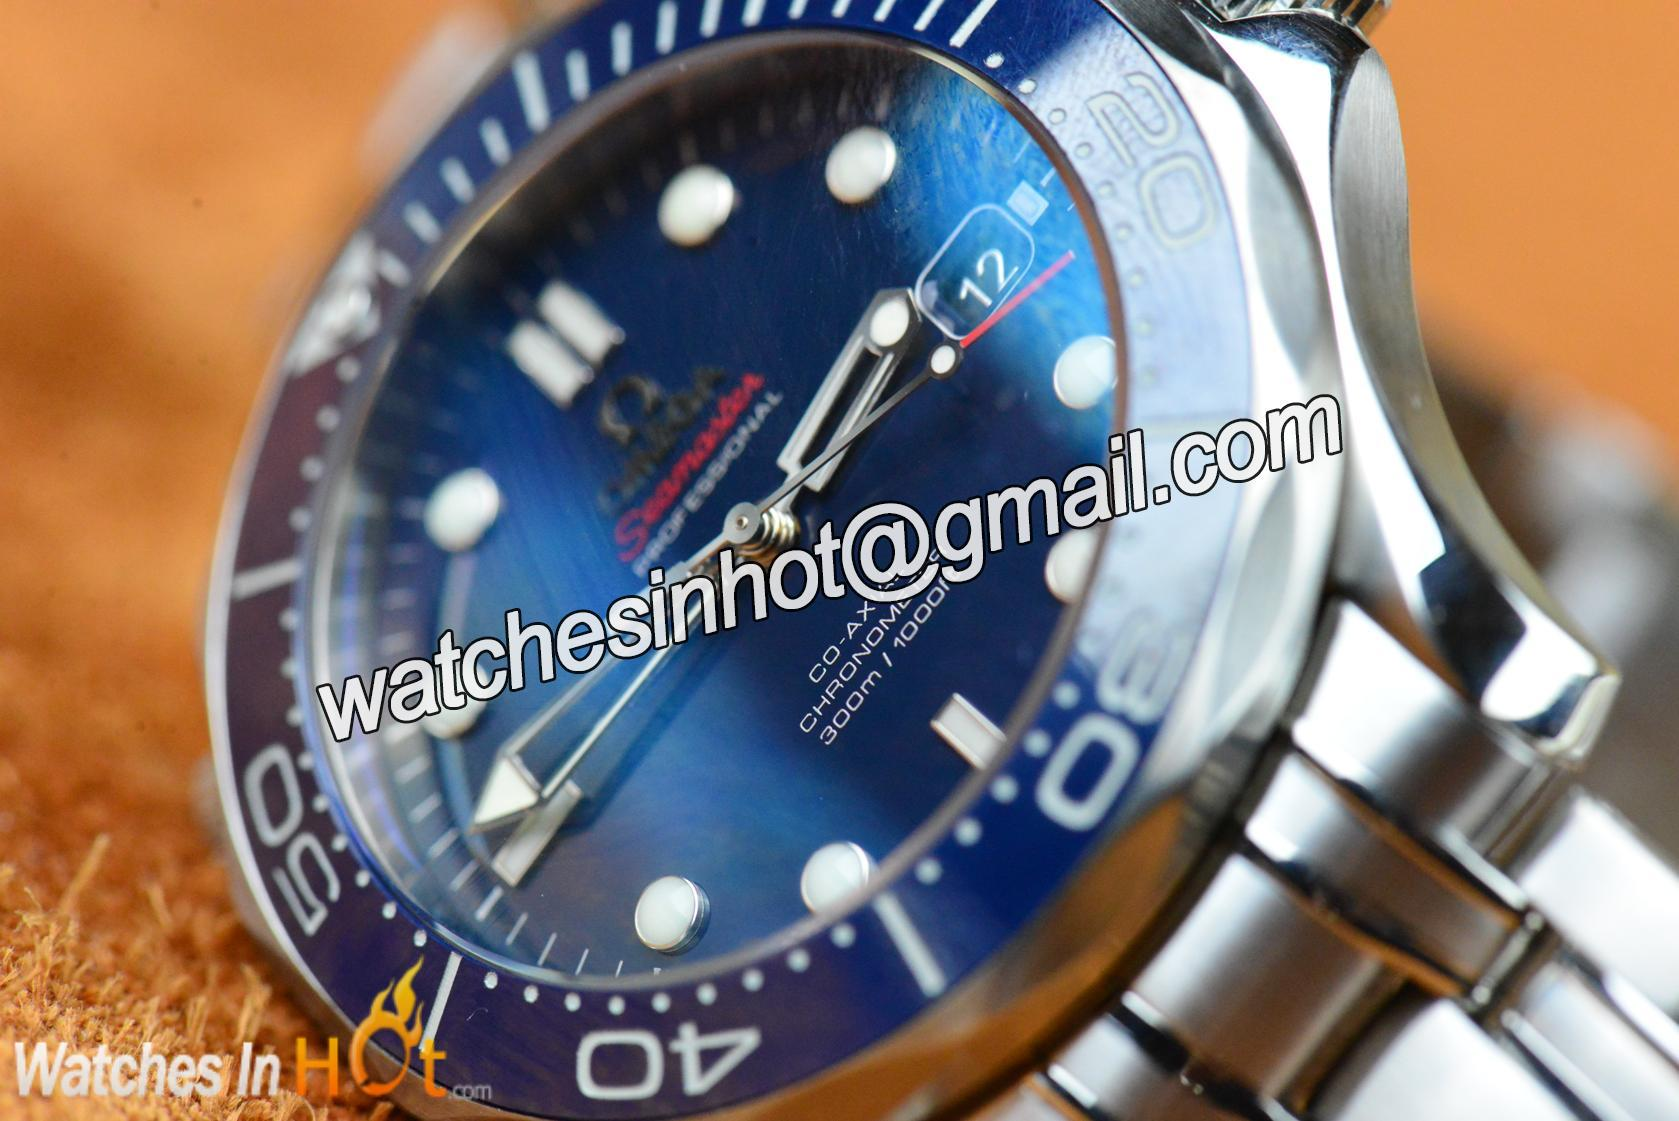 Buy Breitling watches online USA